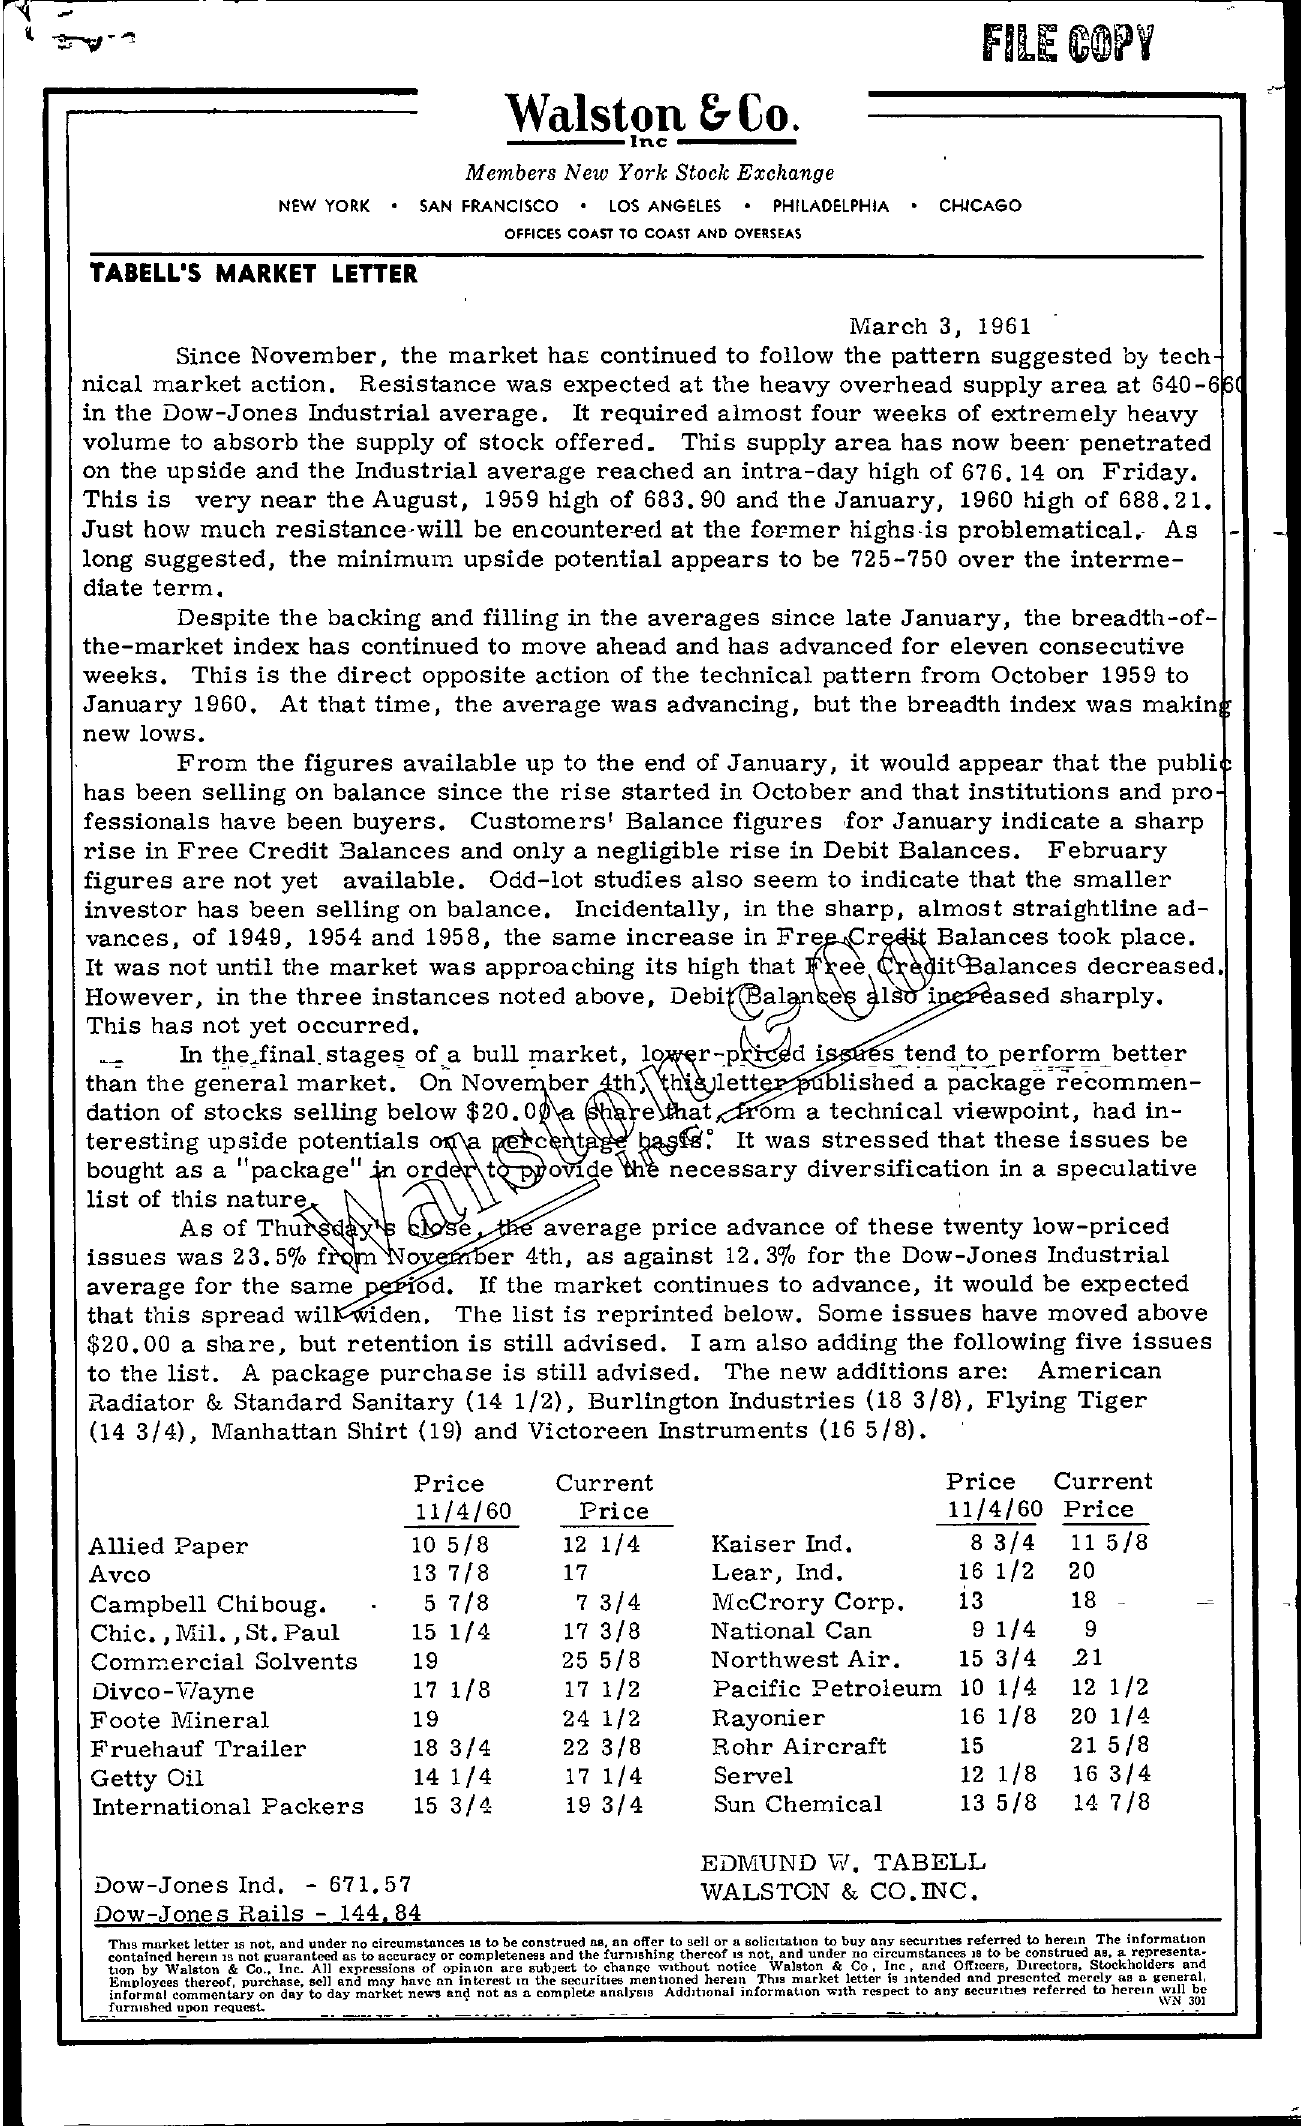 Tabell's Market Letter - March 03, 1961